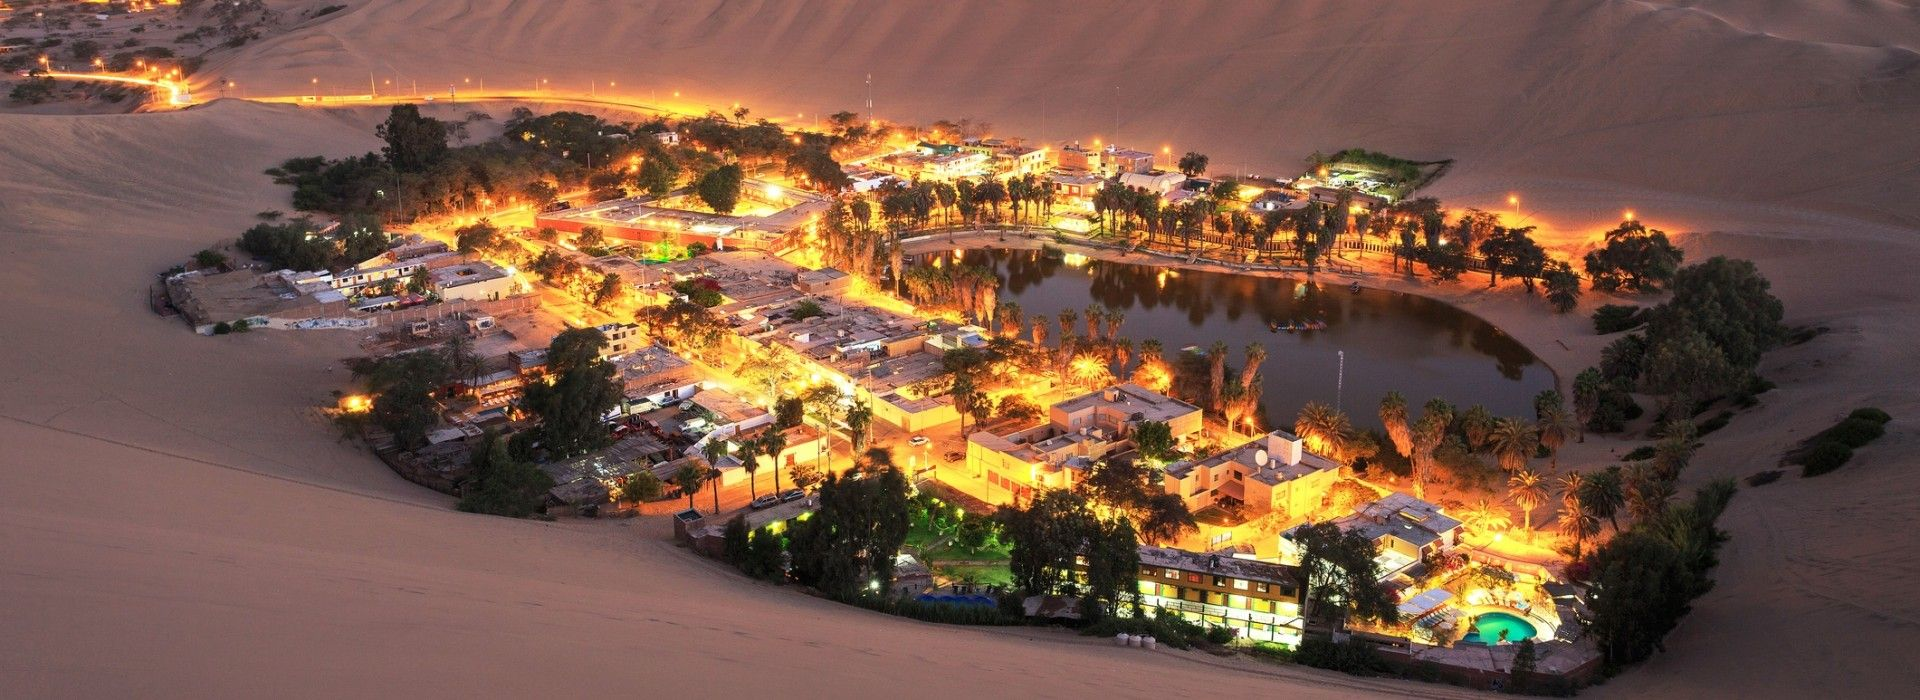 Visit Huacachina for fun dune buggy experiences